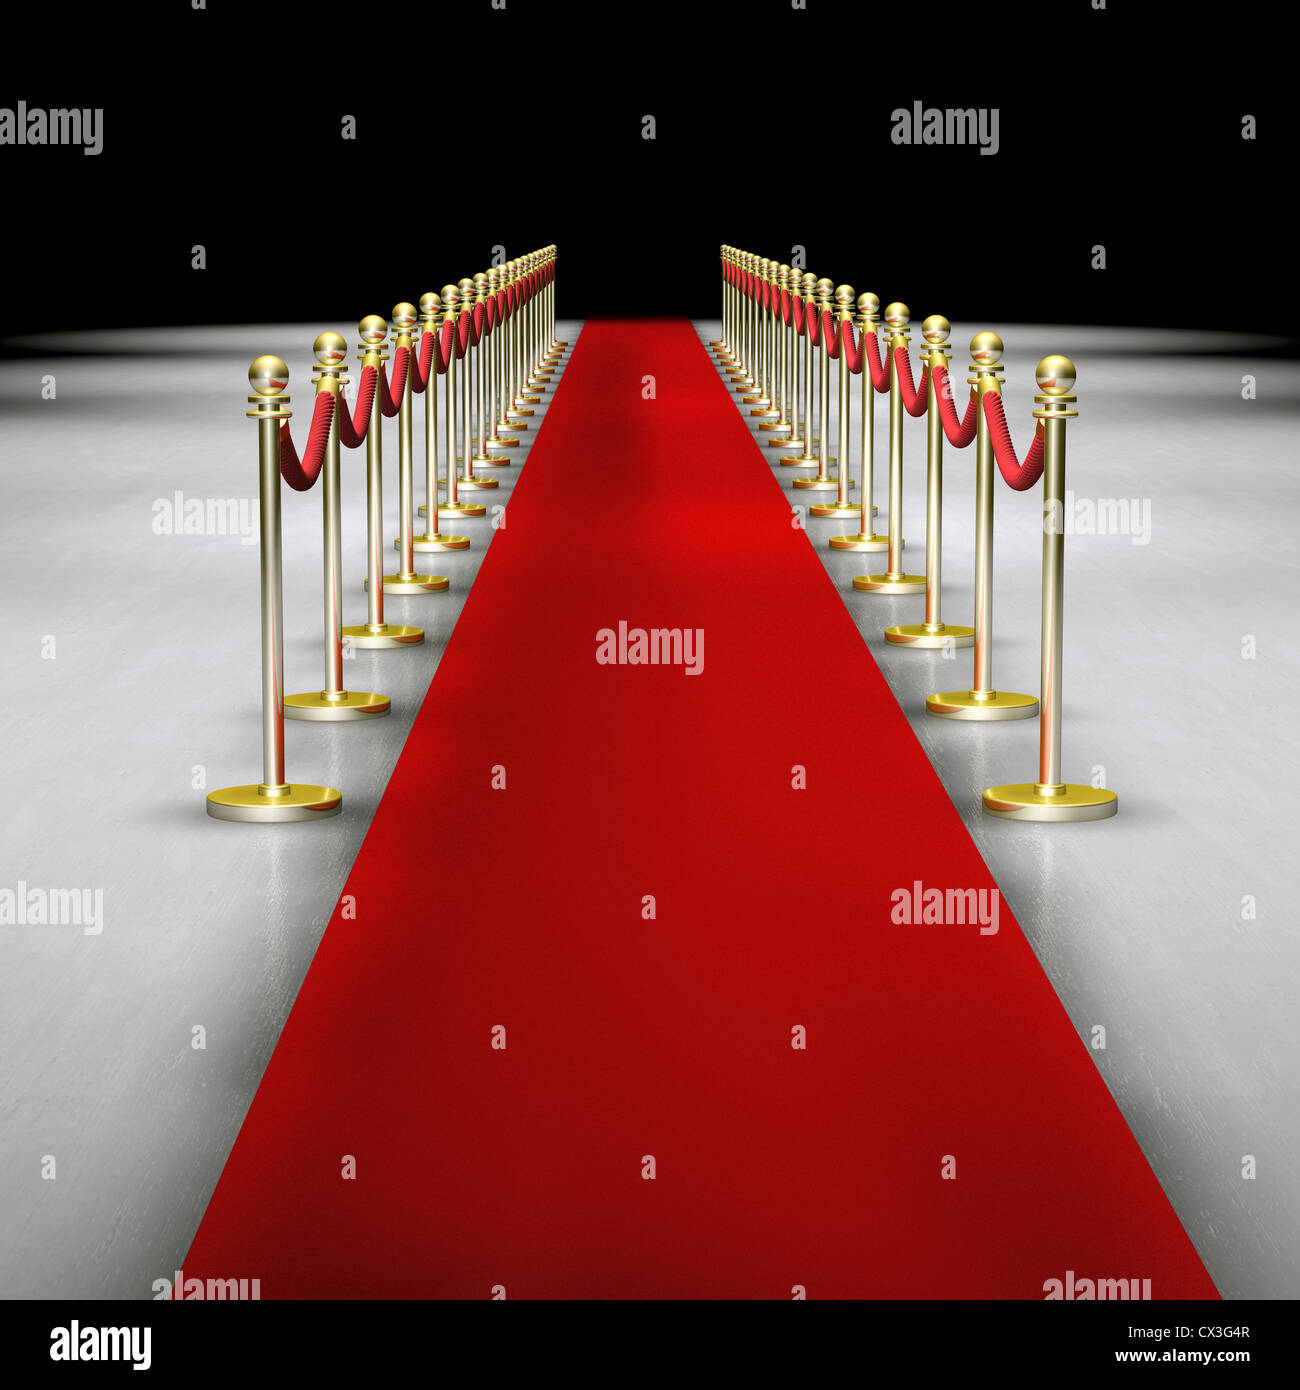 Roter Teppich Mit Absperrung Roter Teppich Mit Absperrung Red Carpet And A Rope Or